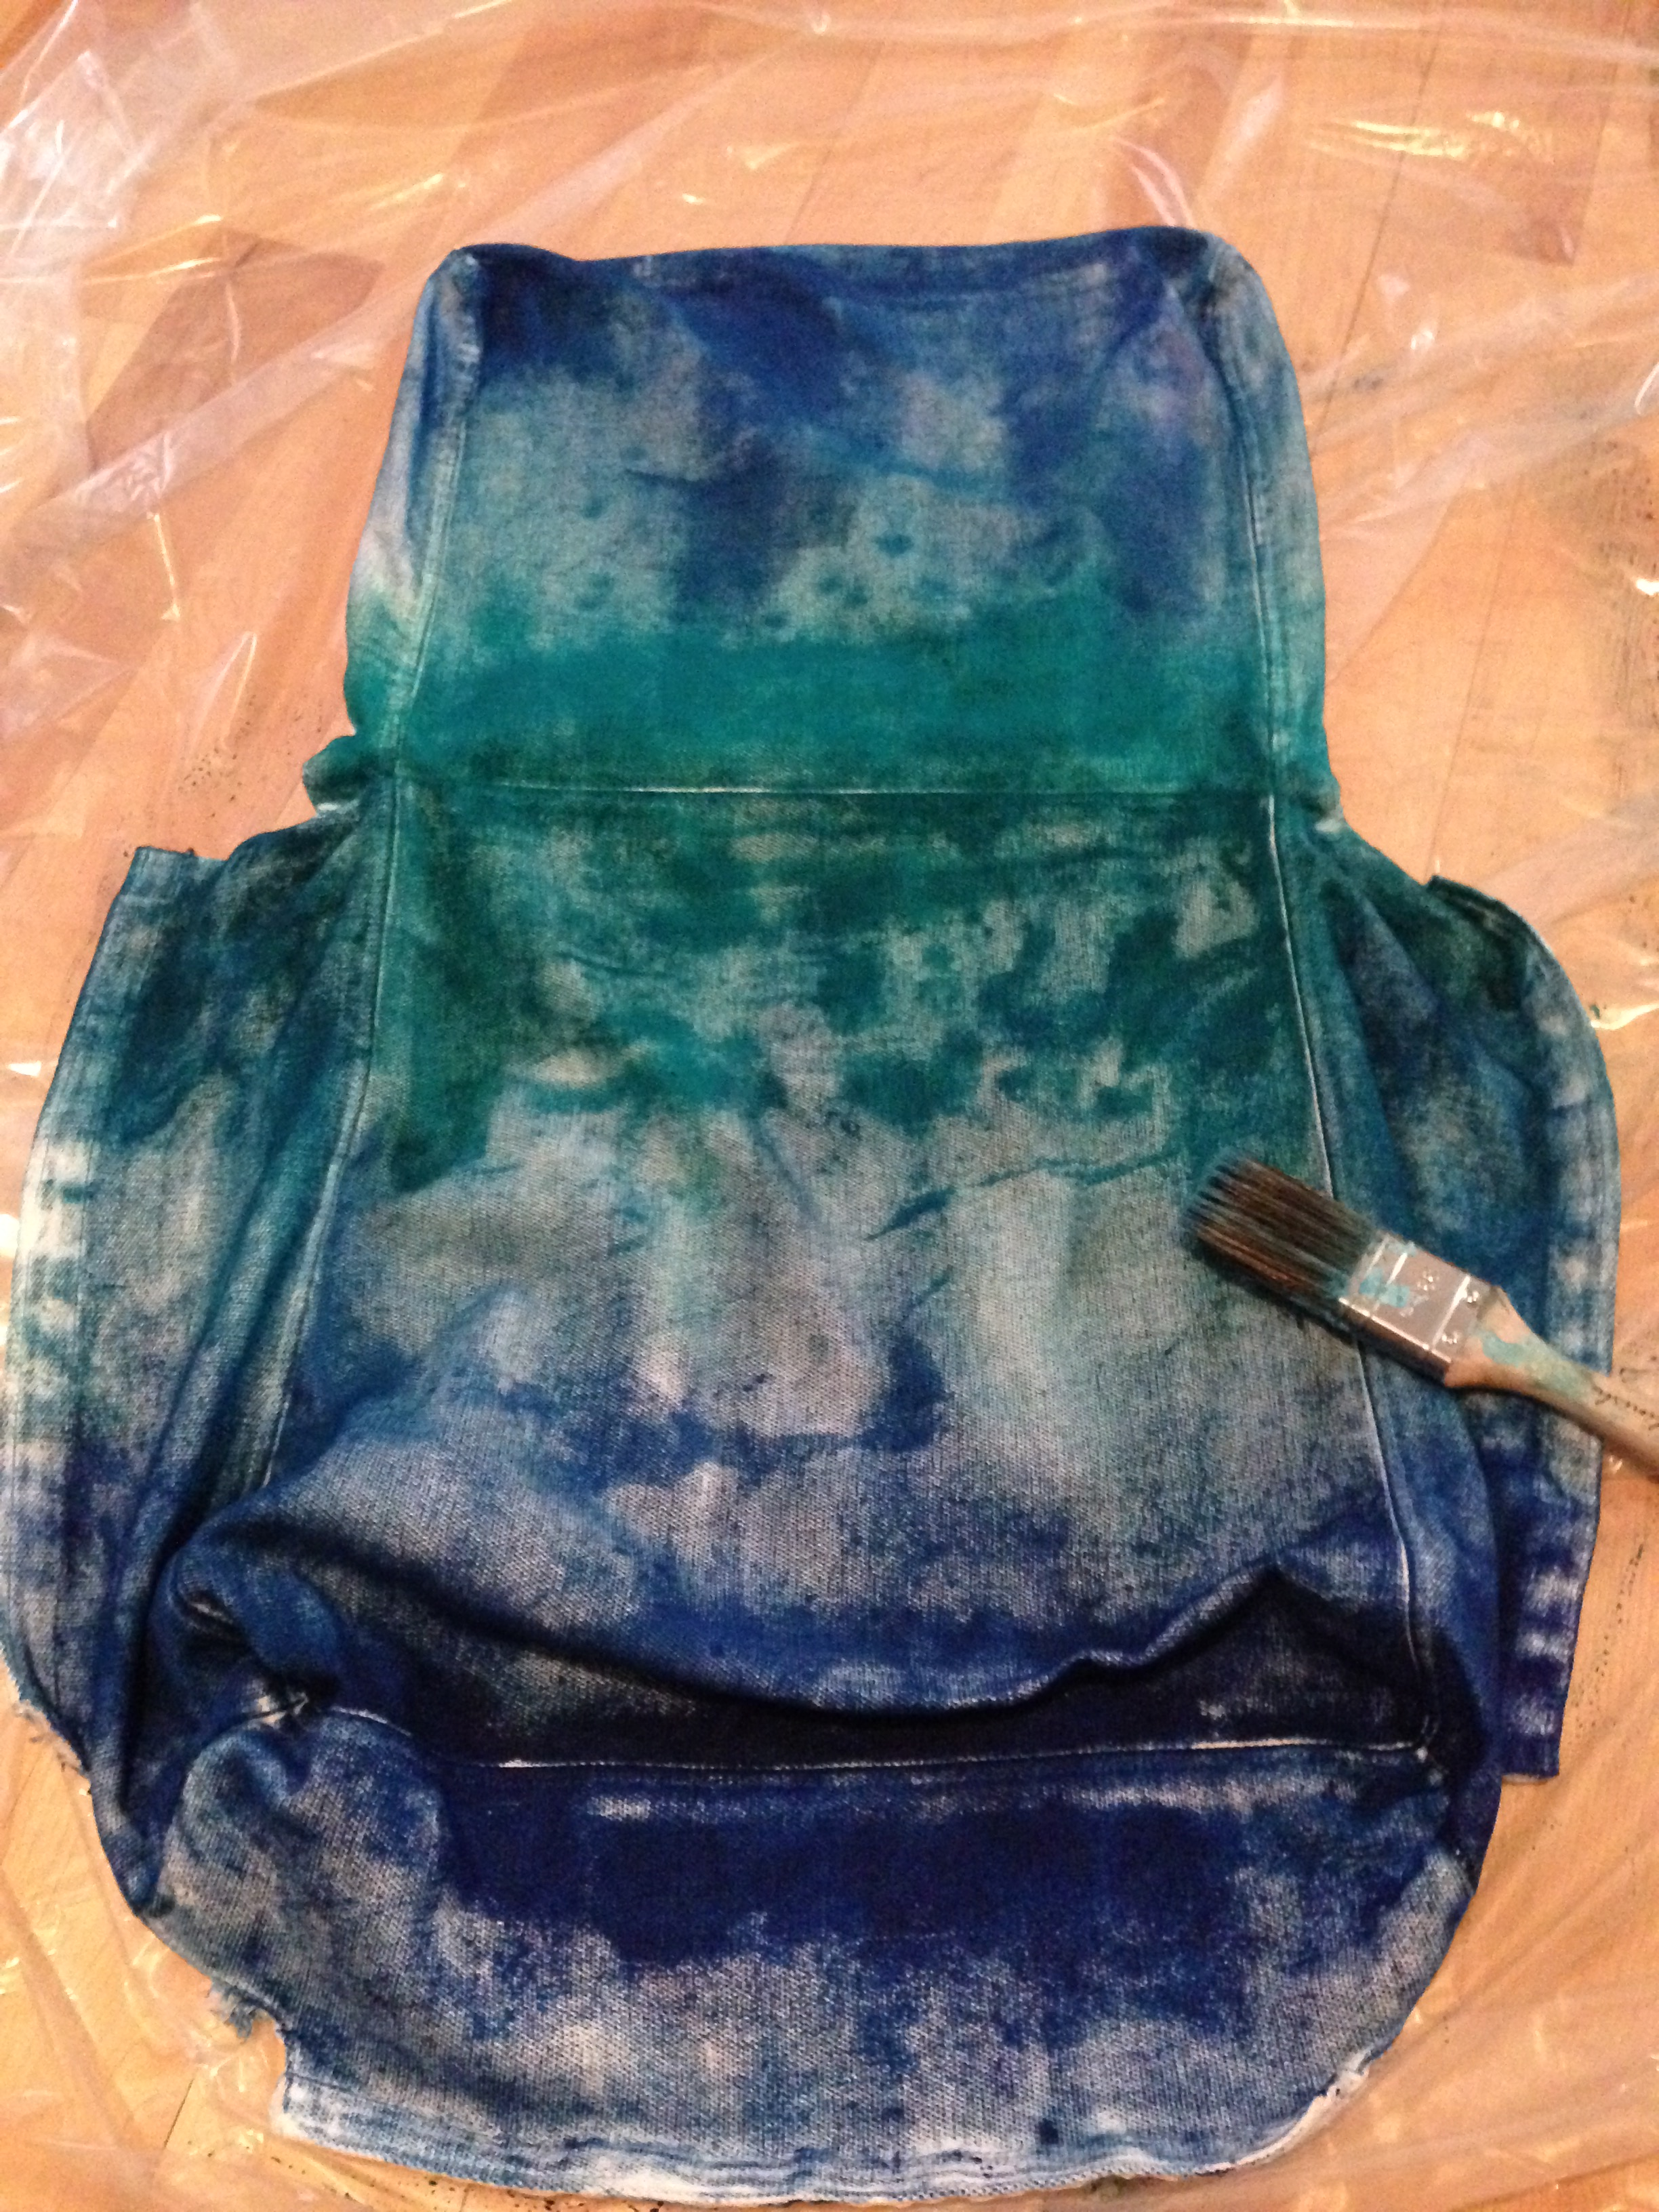 Tie-dying the chair covers